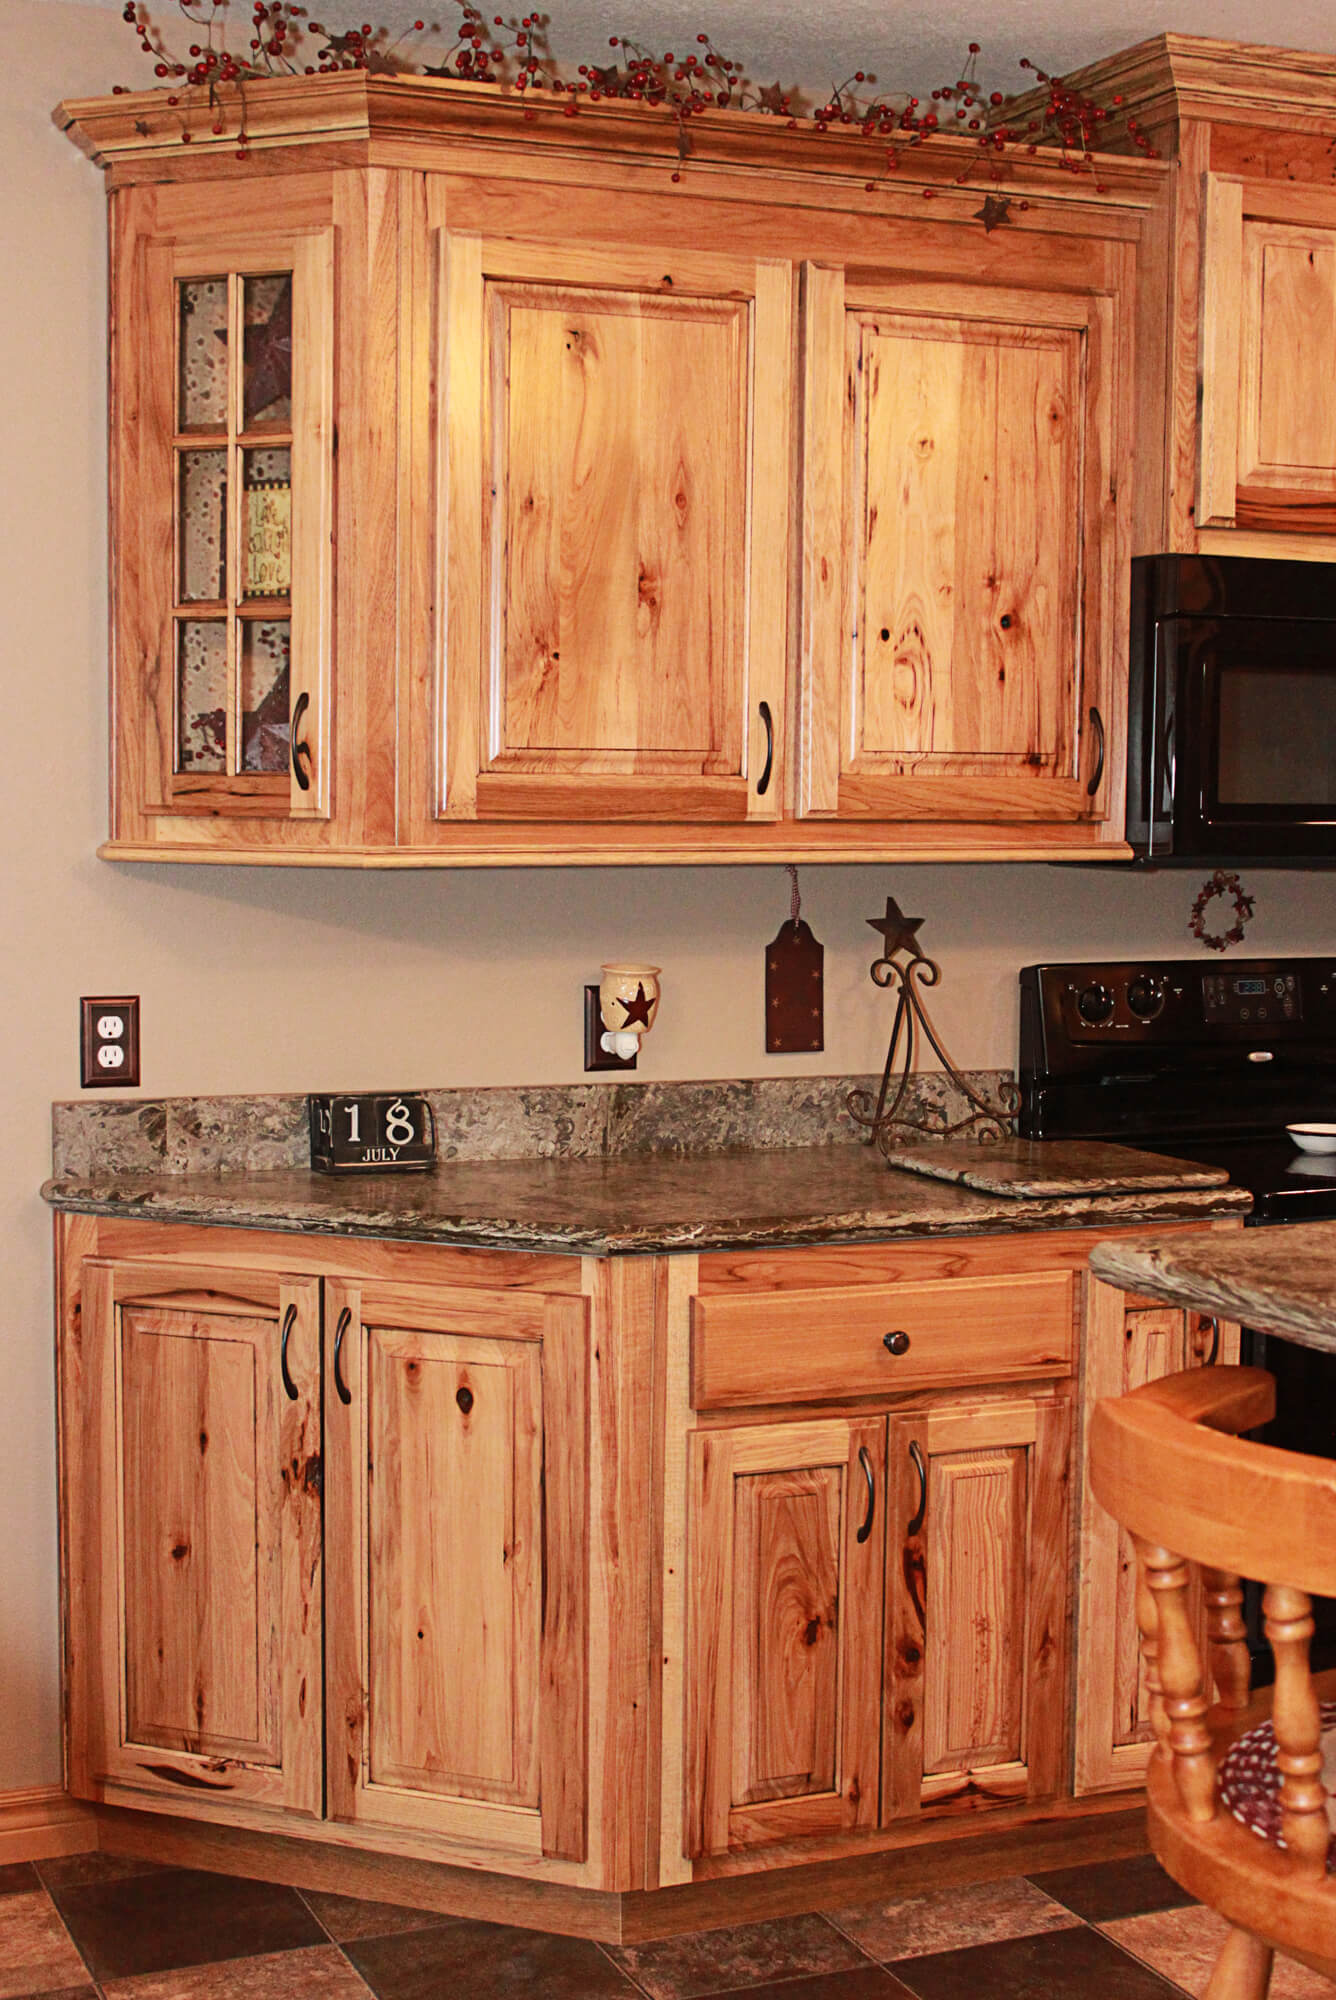 custom-kitchen-cabinet-rustic-hickory-4